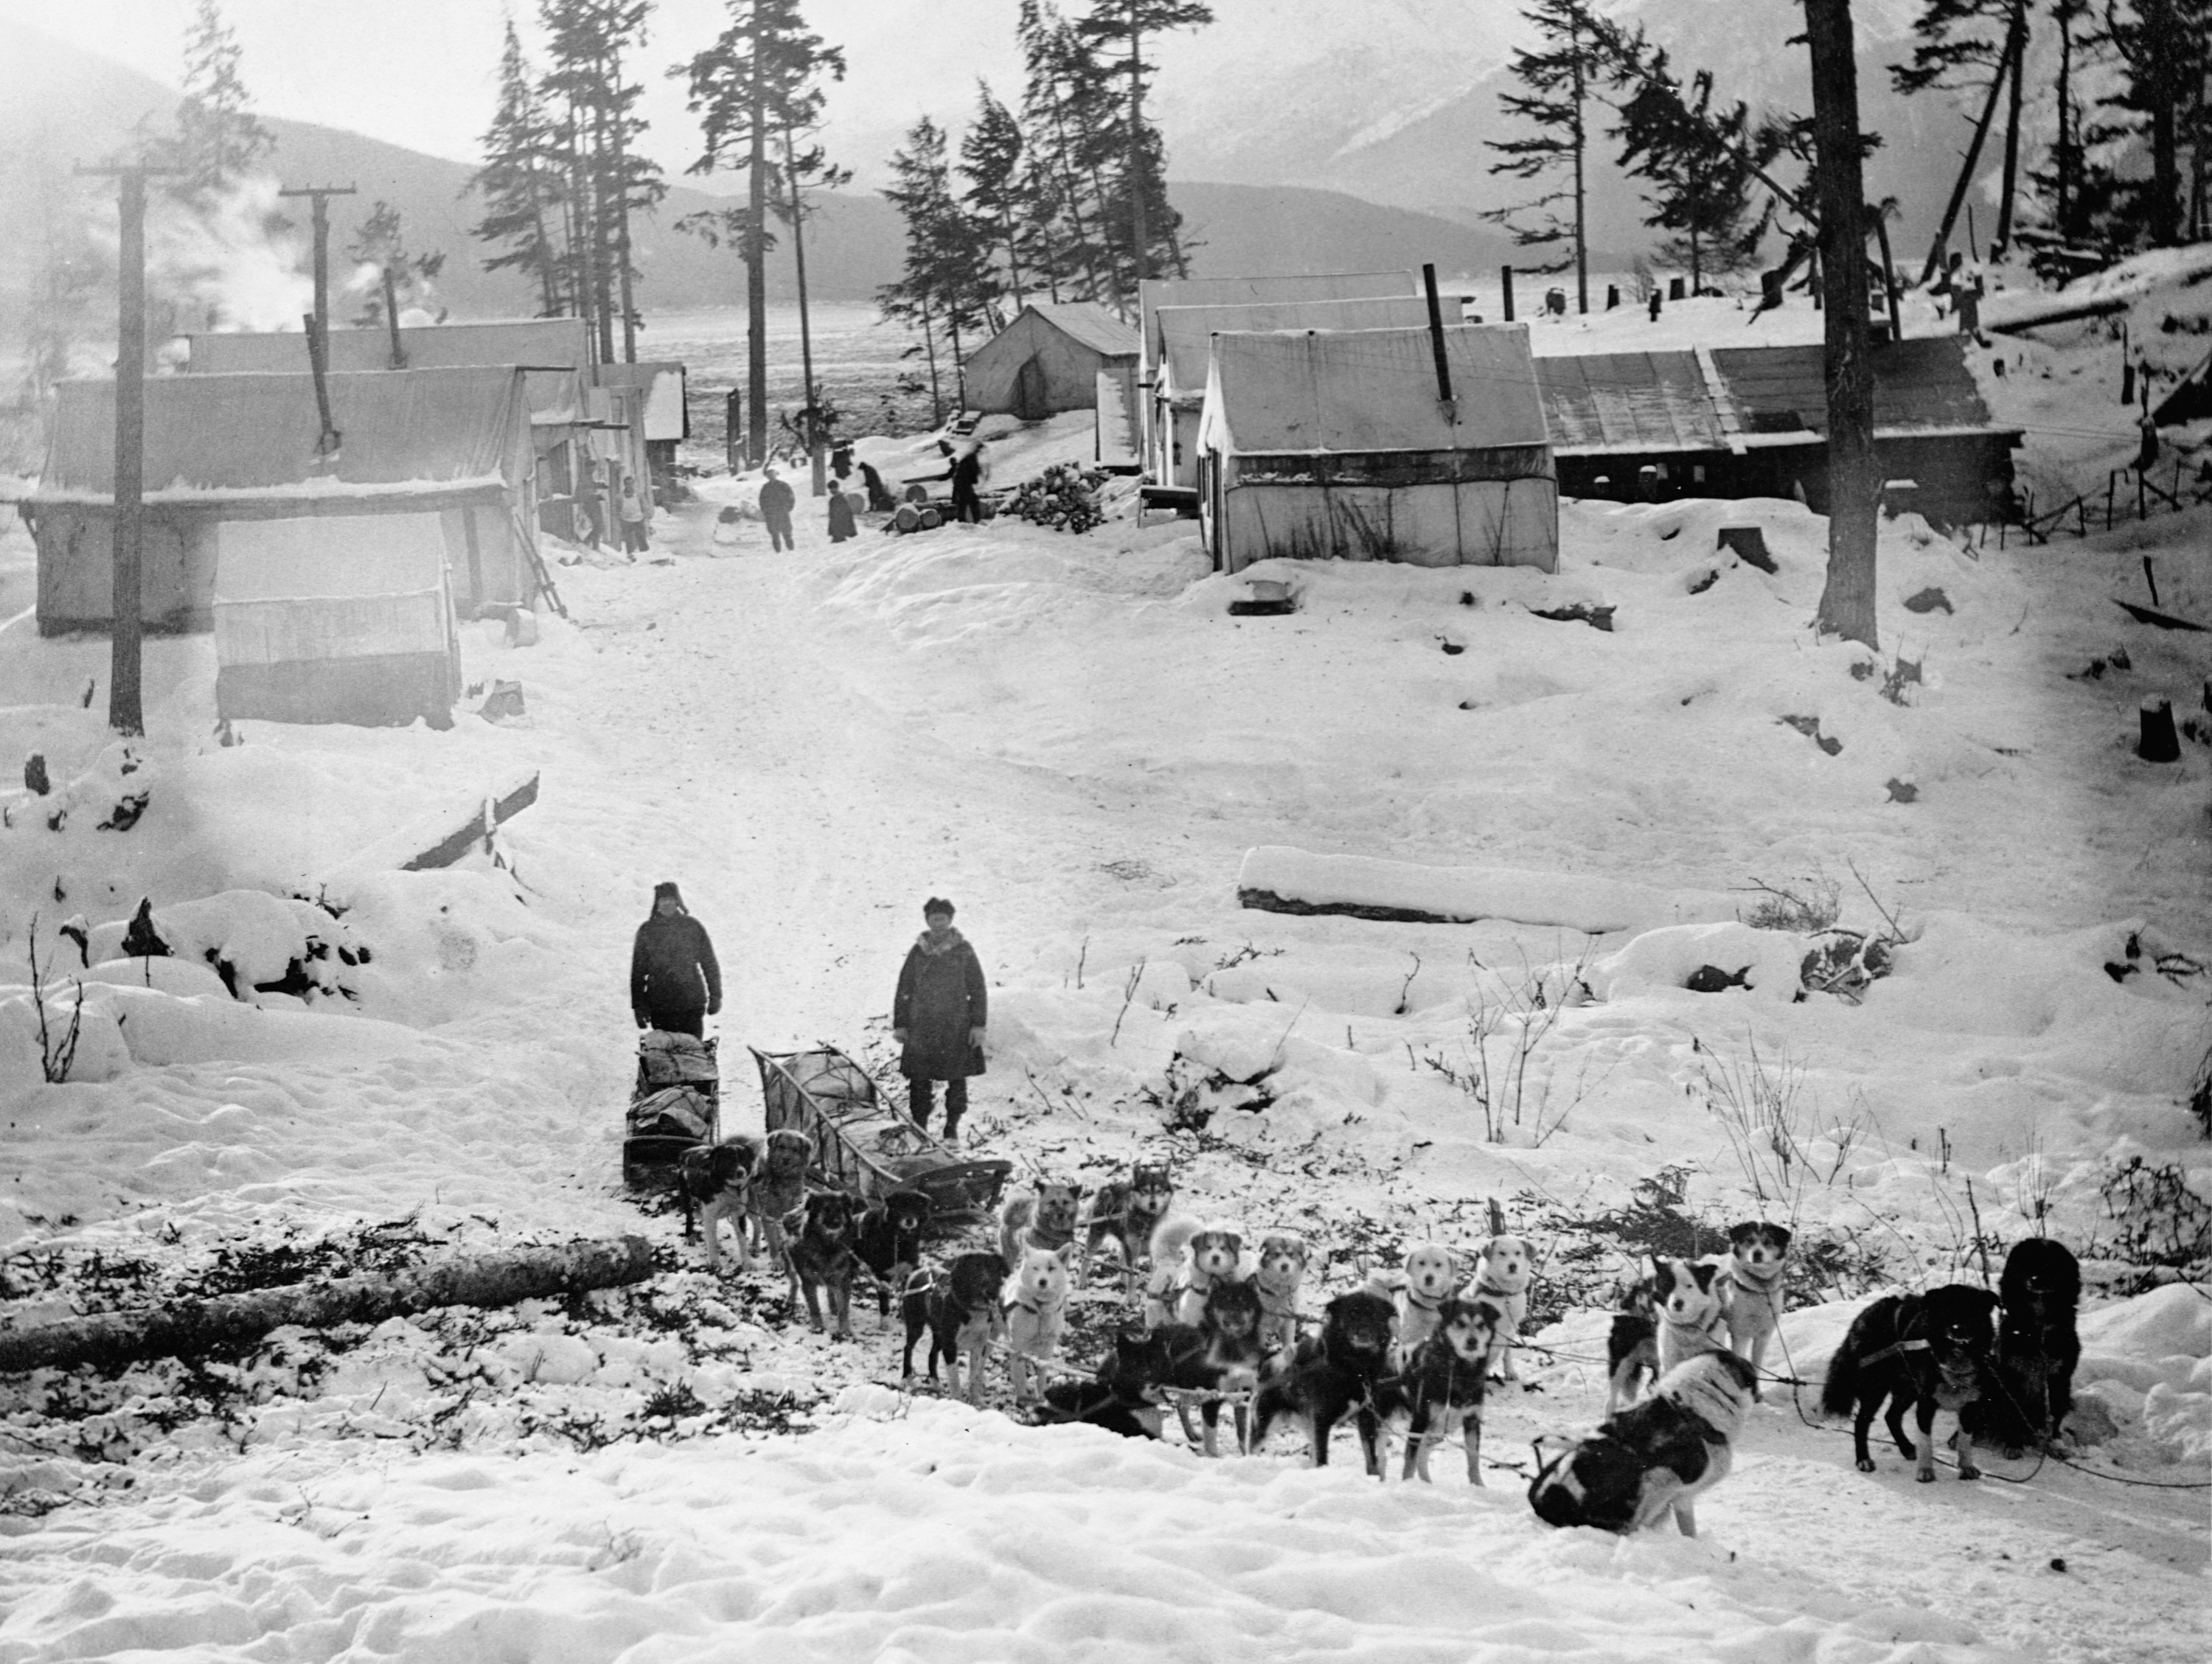 Two dogsled teams and pull carts filled with mail in a snowy village